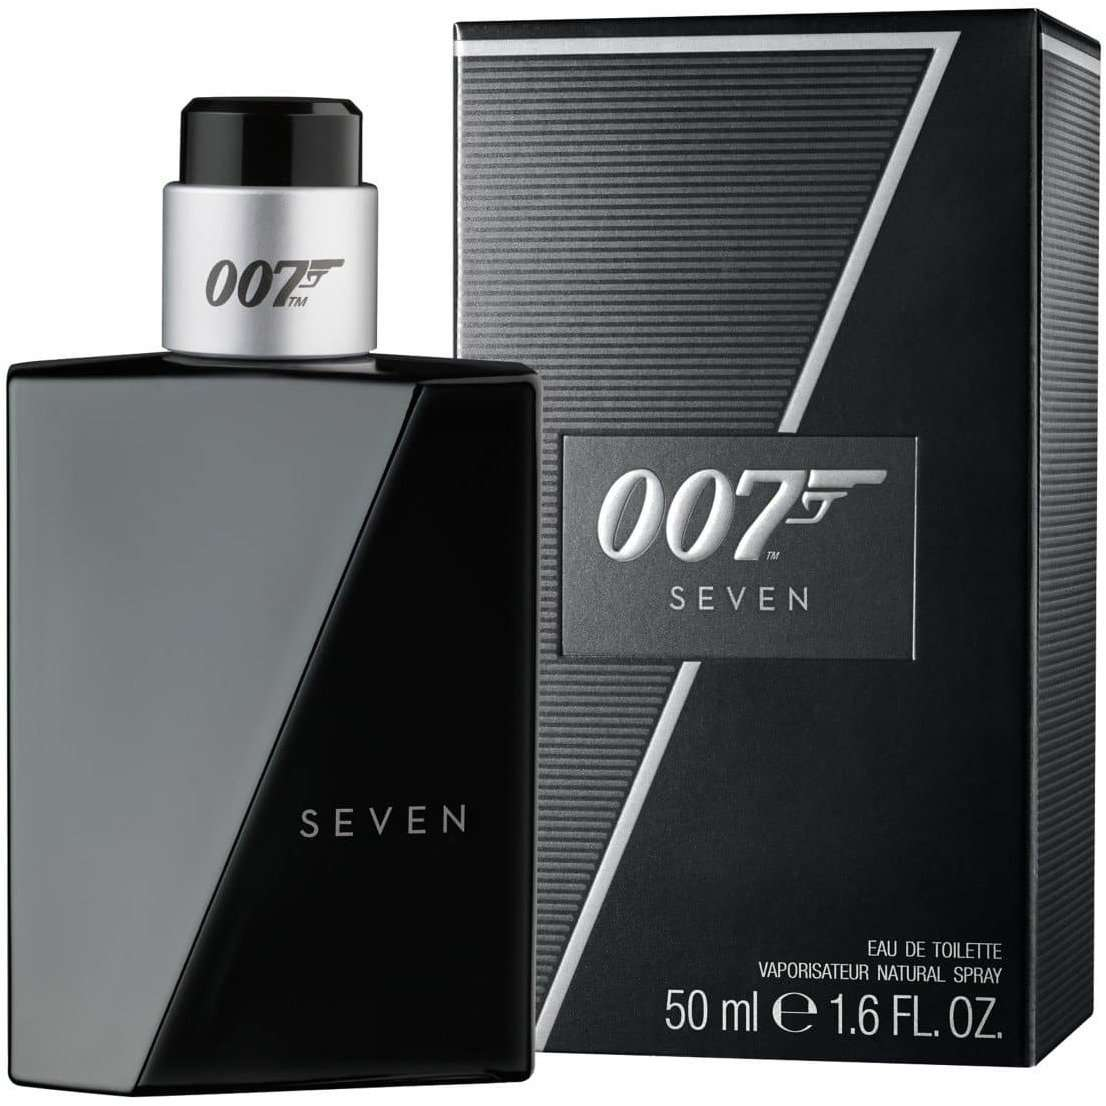 James Bond 007 Seven For Men Eau De Toilette Fragrance (50ml)